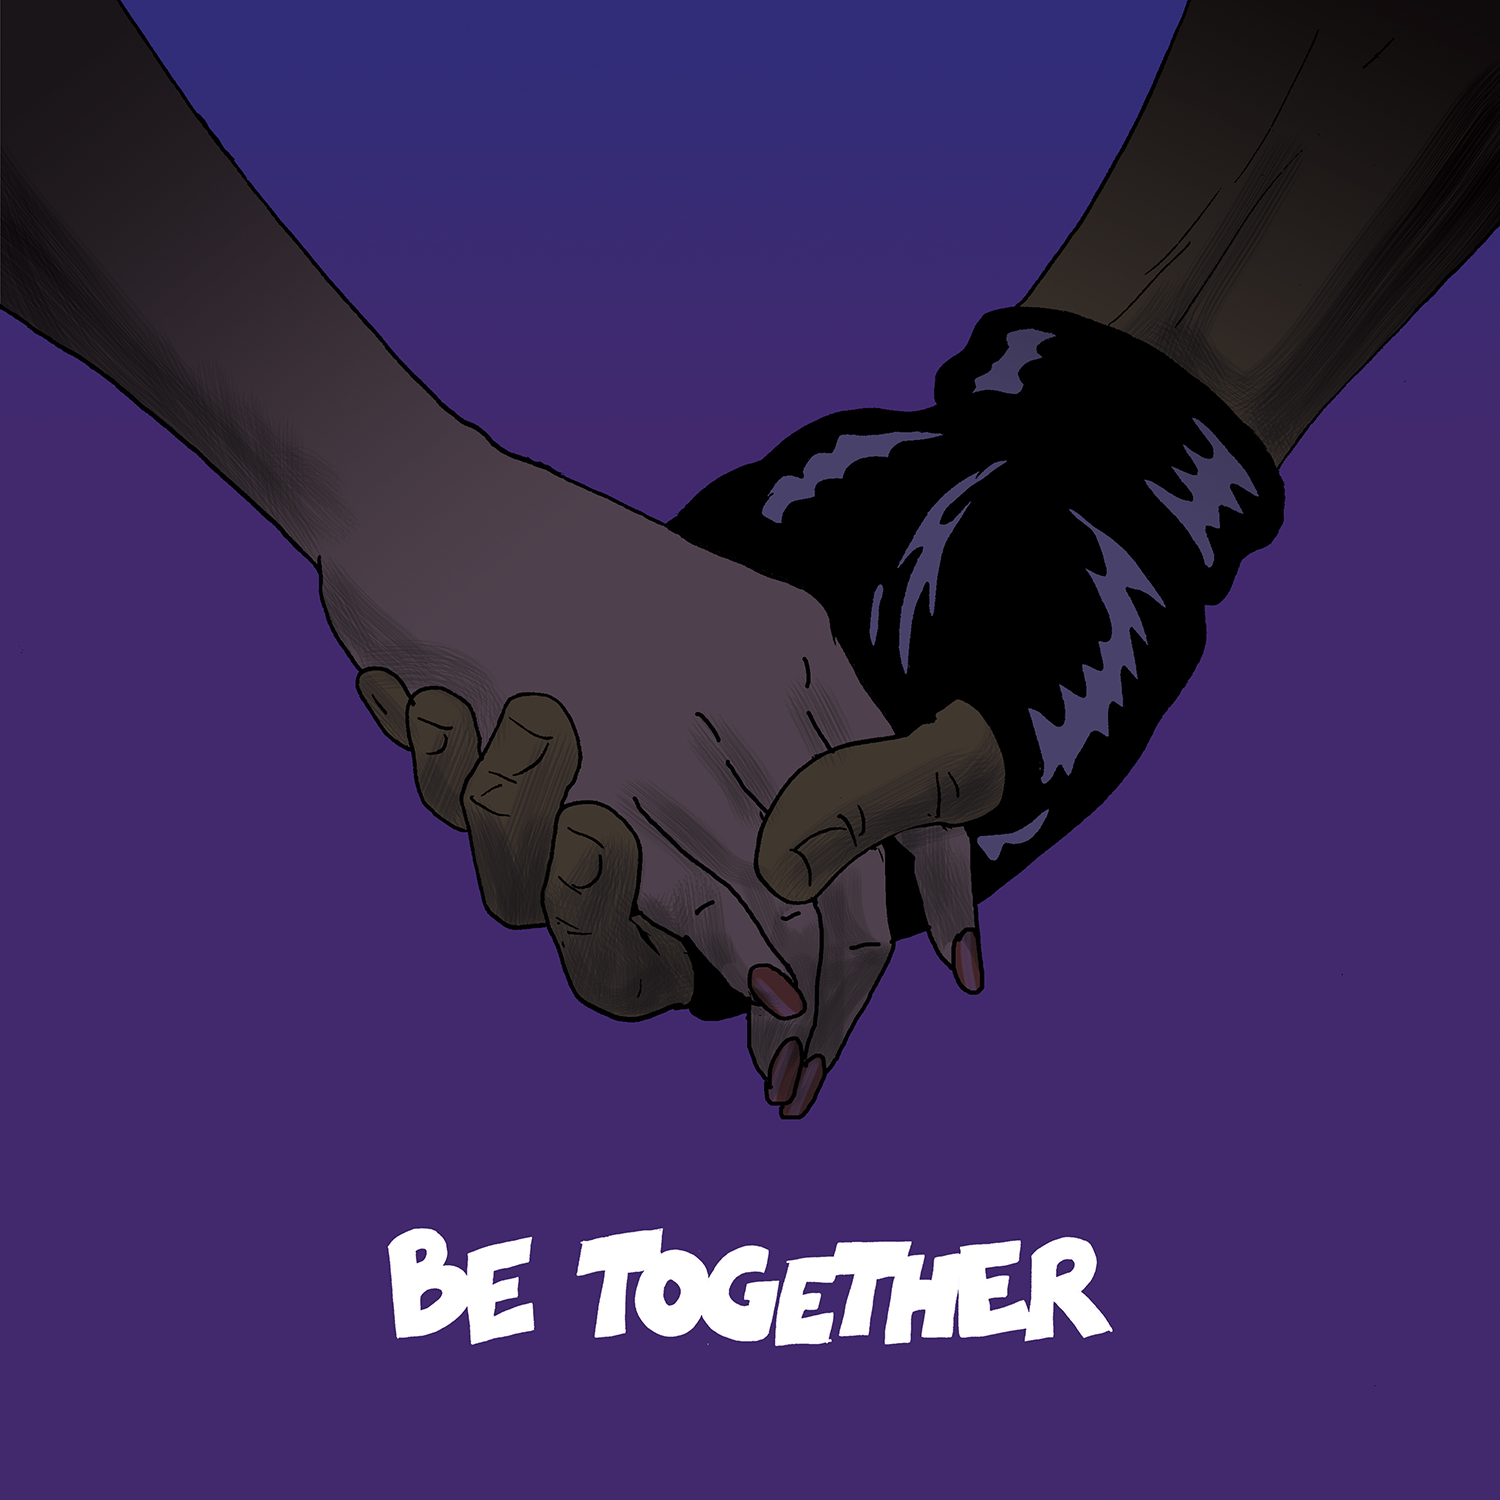 Major-Lazer-Be-Together-2015-1500x1500